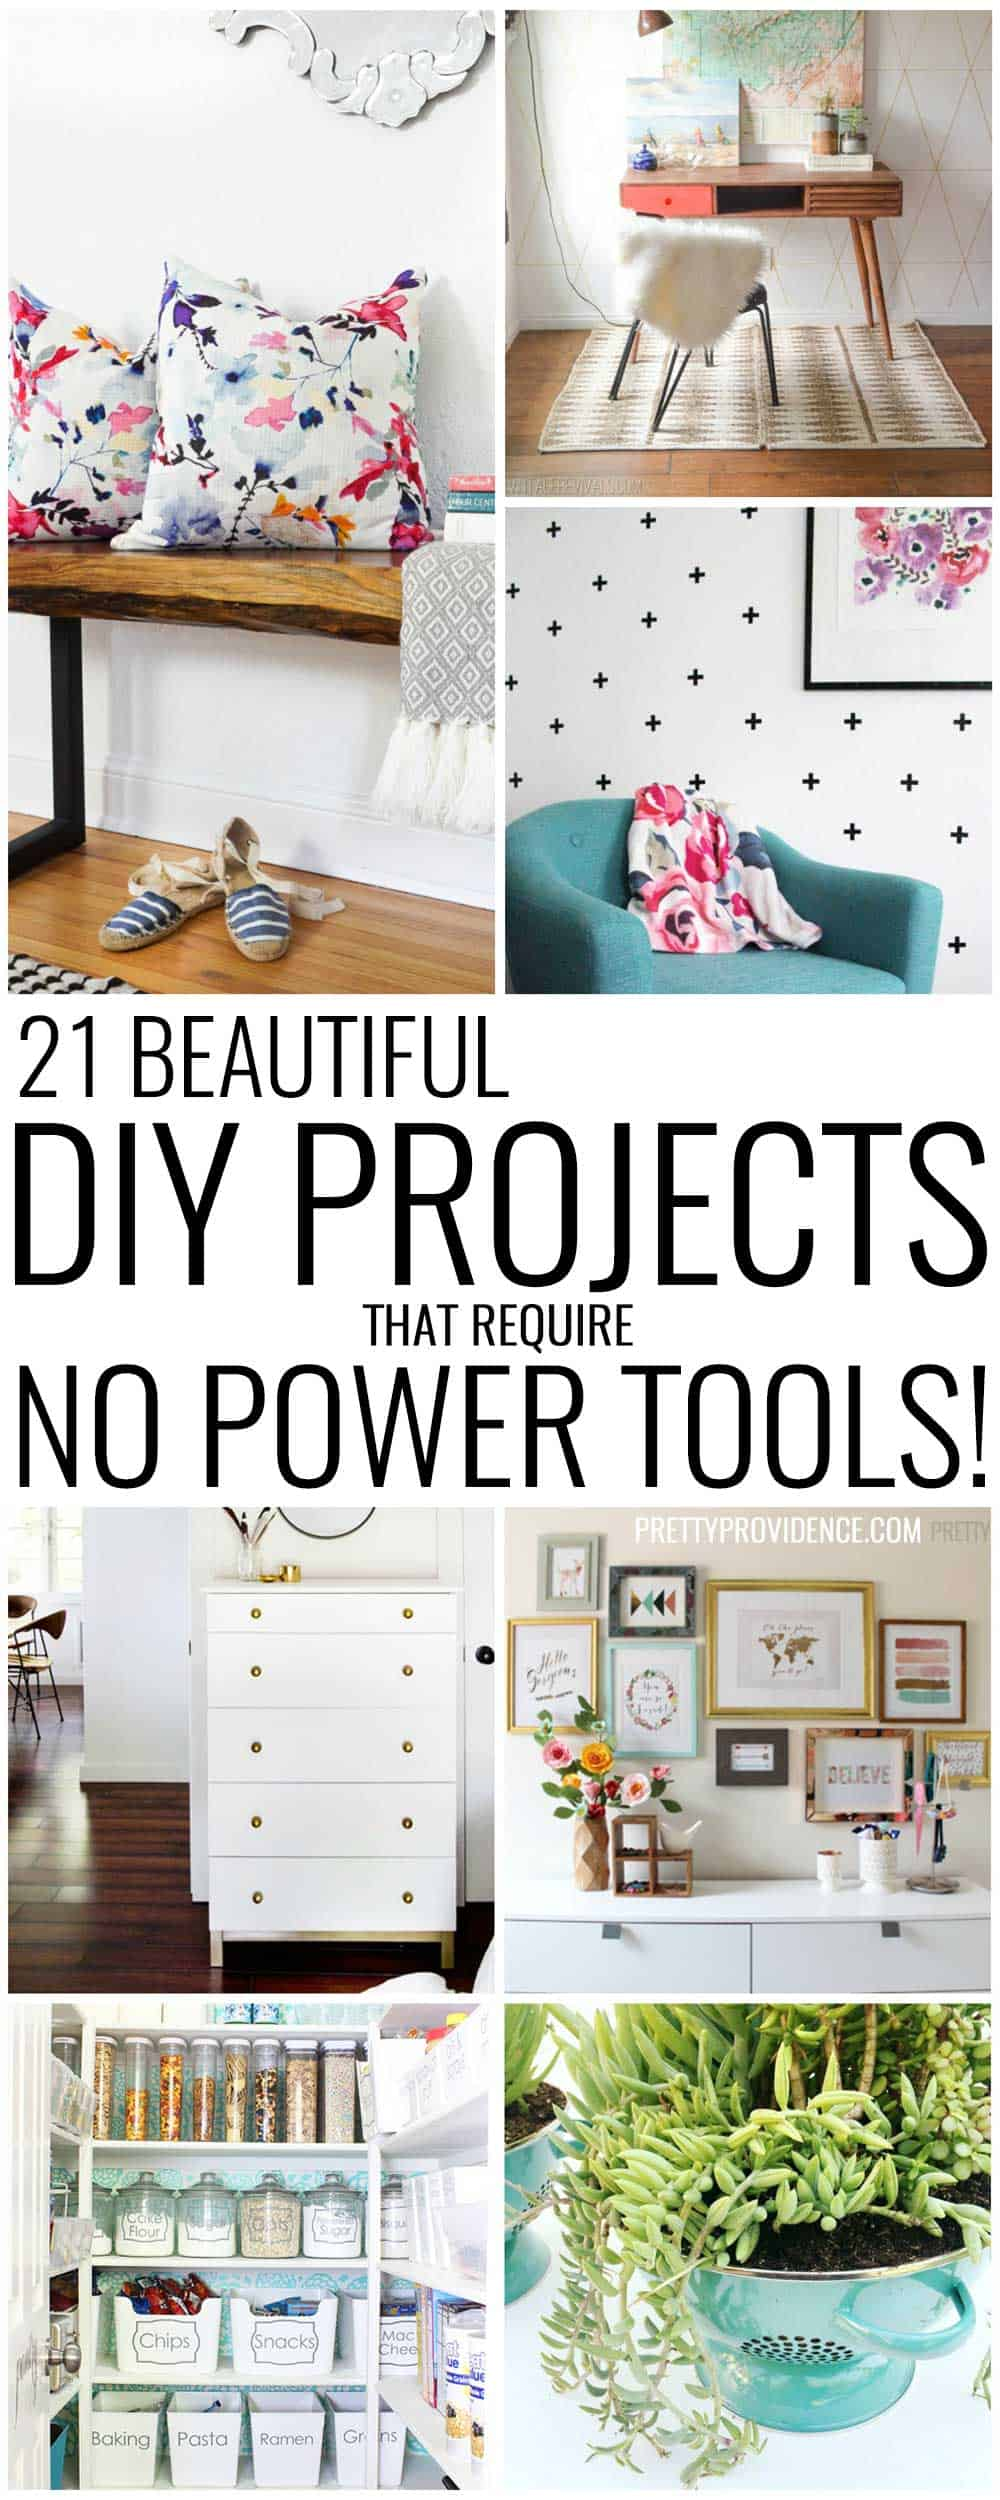 diy-projects-no-power-tools-pin